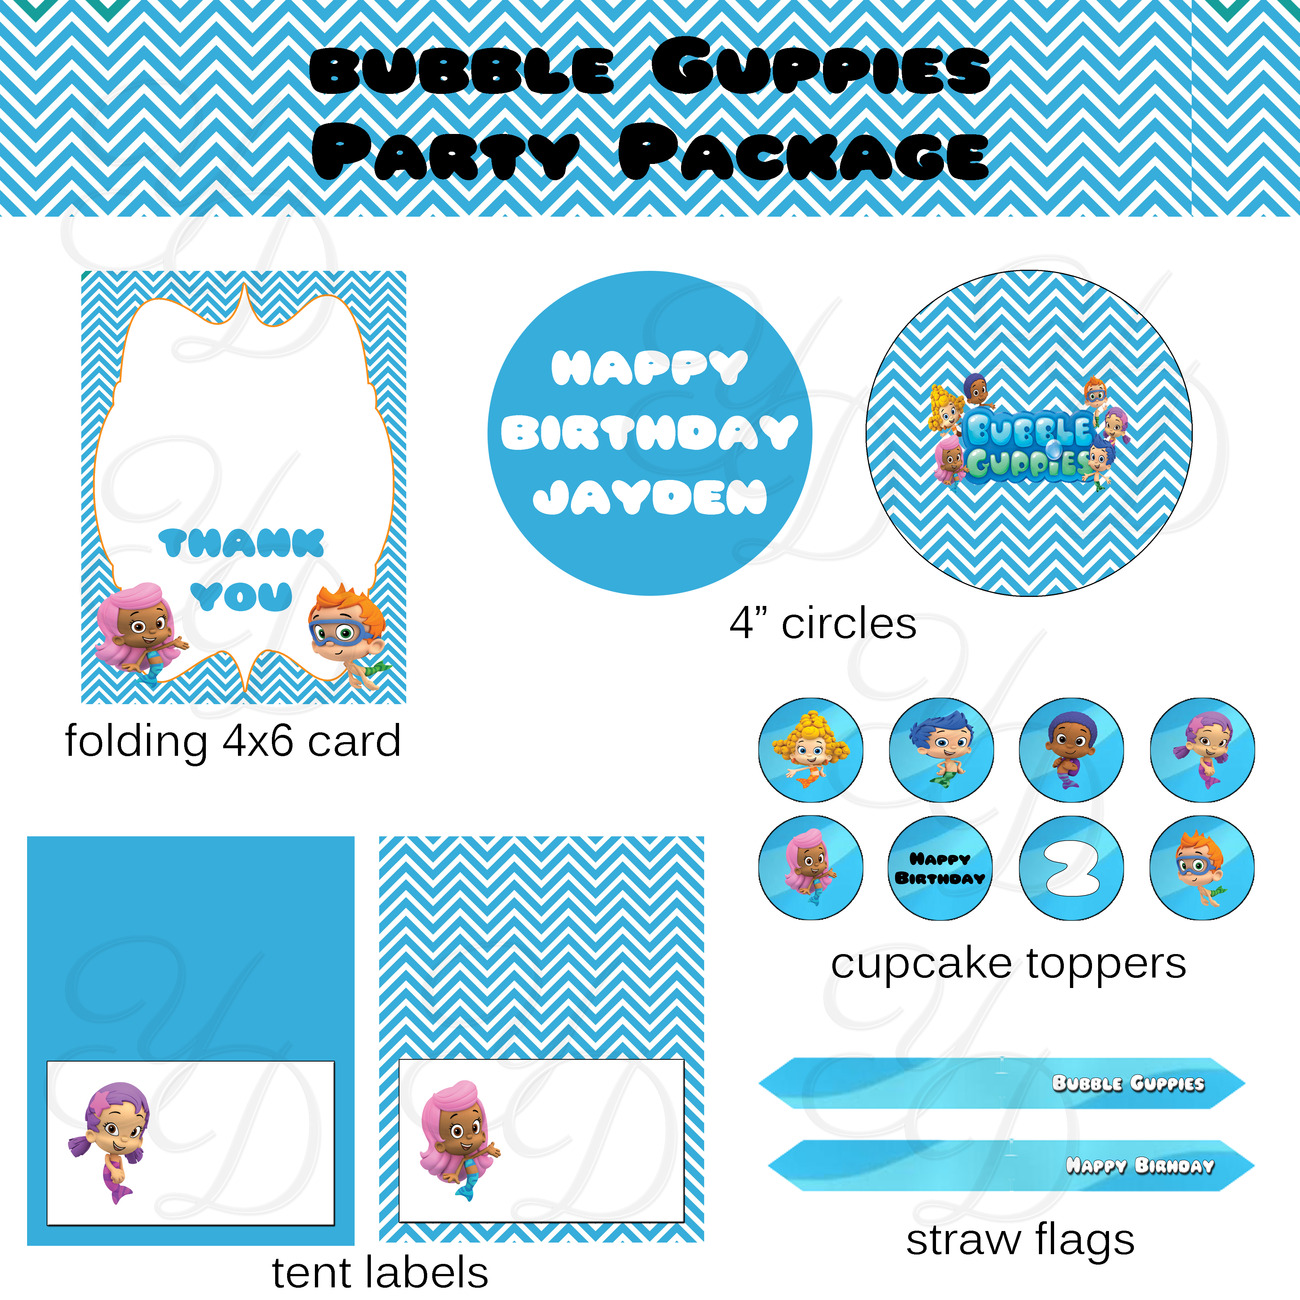 Bubble Guppies Invitation Printable and 50 similar items – Free Printable Bubble Guppies Birthday Invitations